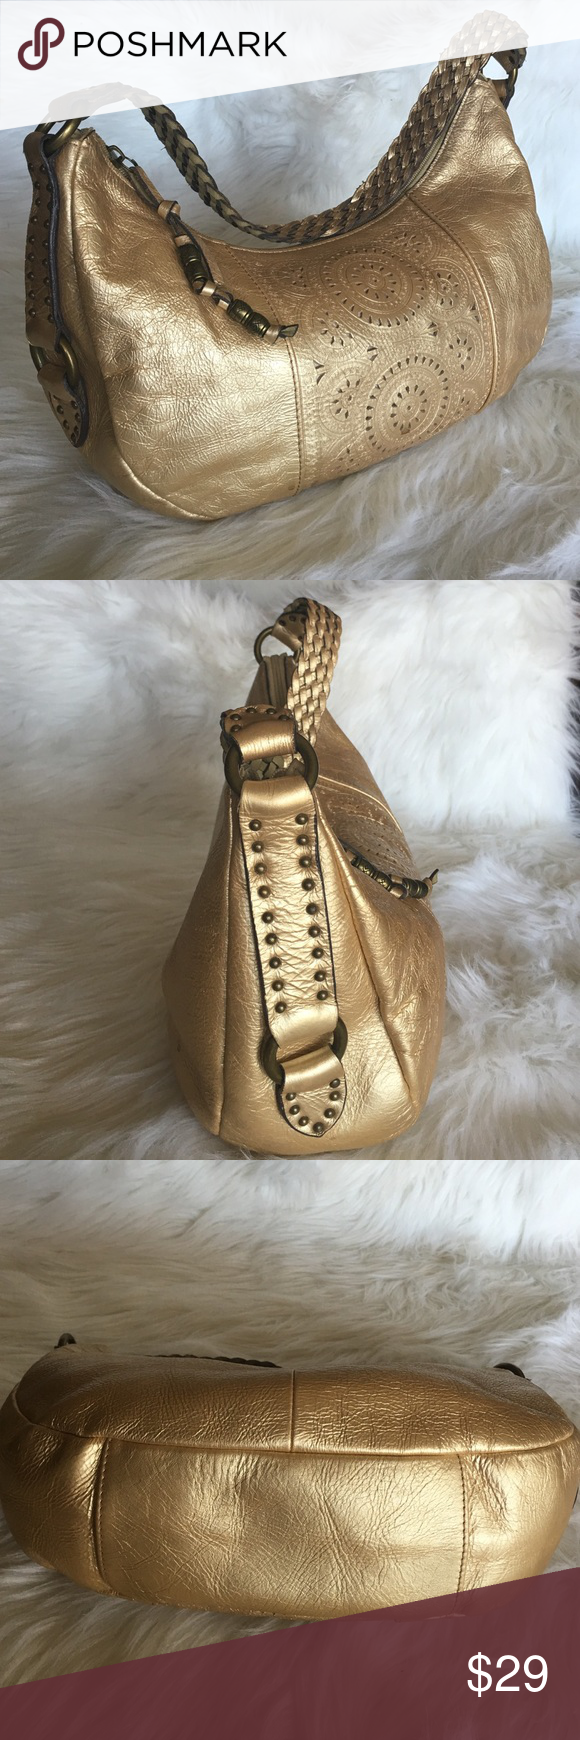 "💯Genuine Leather FOSSIL  GOLDEN LASER CUT BAG Soft as a butter,light as a feather golden  bag. Preowned in good condition,no any sign of wearing outside ,few small stains inside on the lining. L 12,5"", H  8"" ,D4"" Handle D 10"" Fossil Bags"